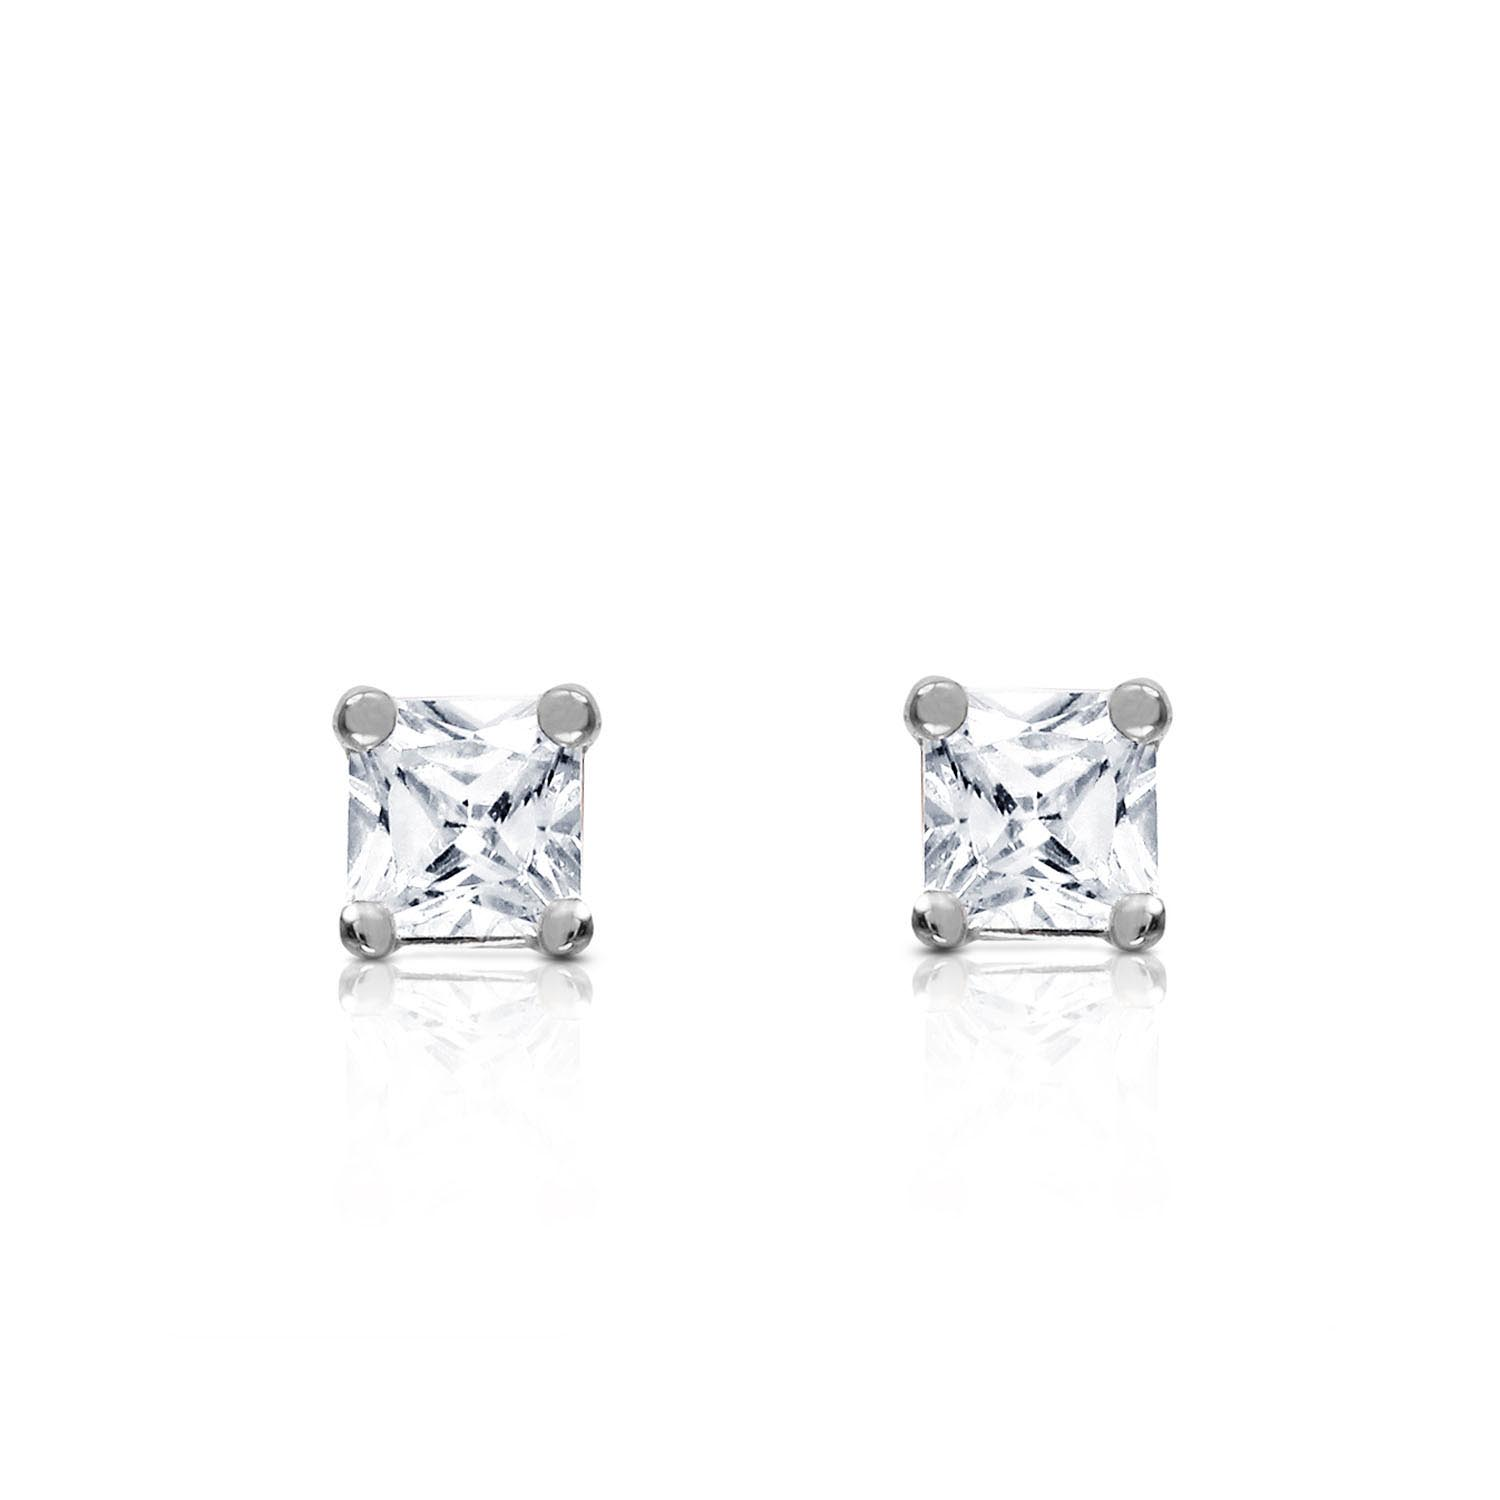 Diamond Stud Earrings in 9ct White Gold